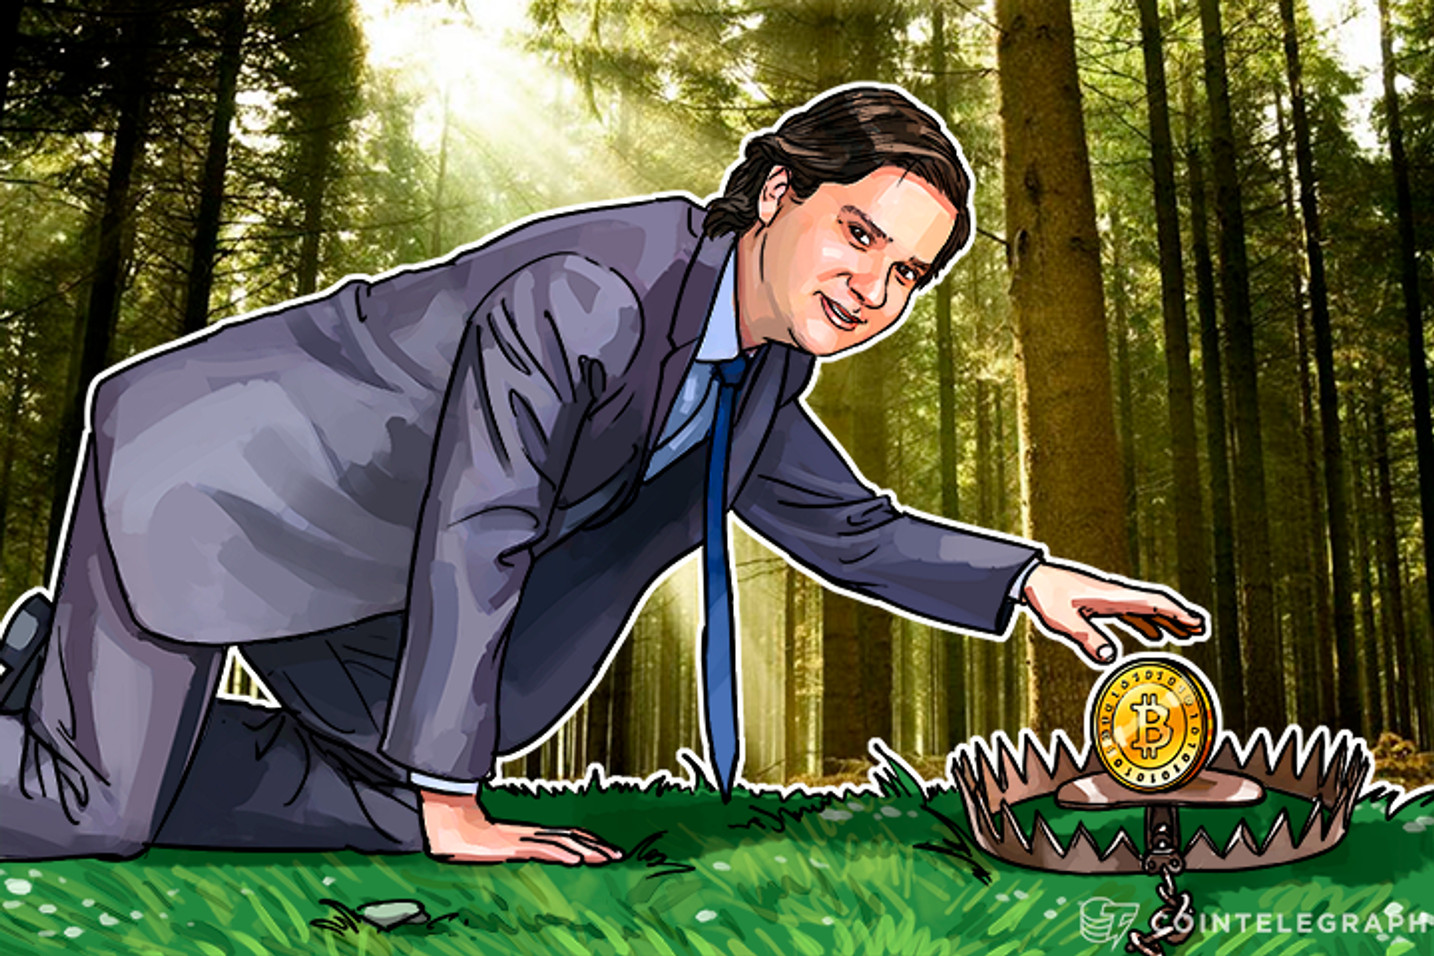 Next BTC Scam Wants You: What Makes People Fall Into Financial Traps